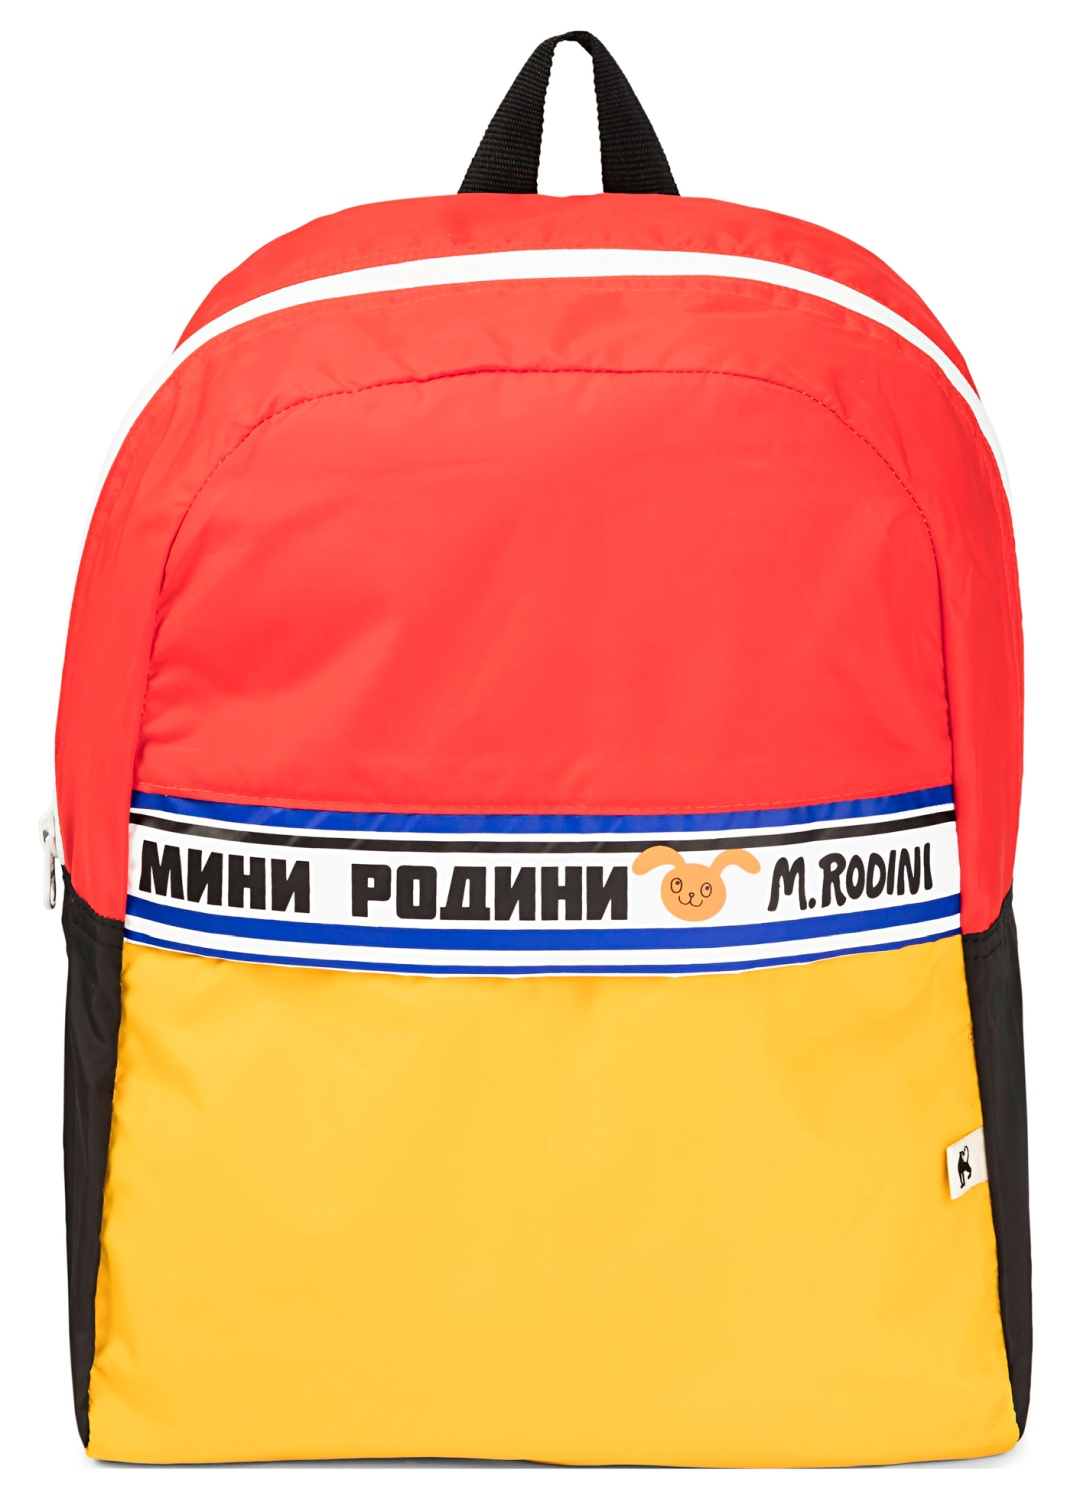 Moscow lightweight backpack image number 0